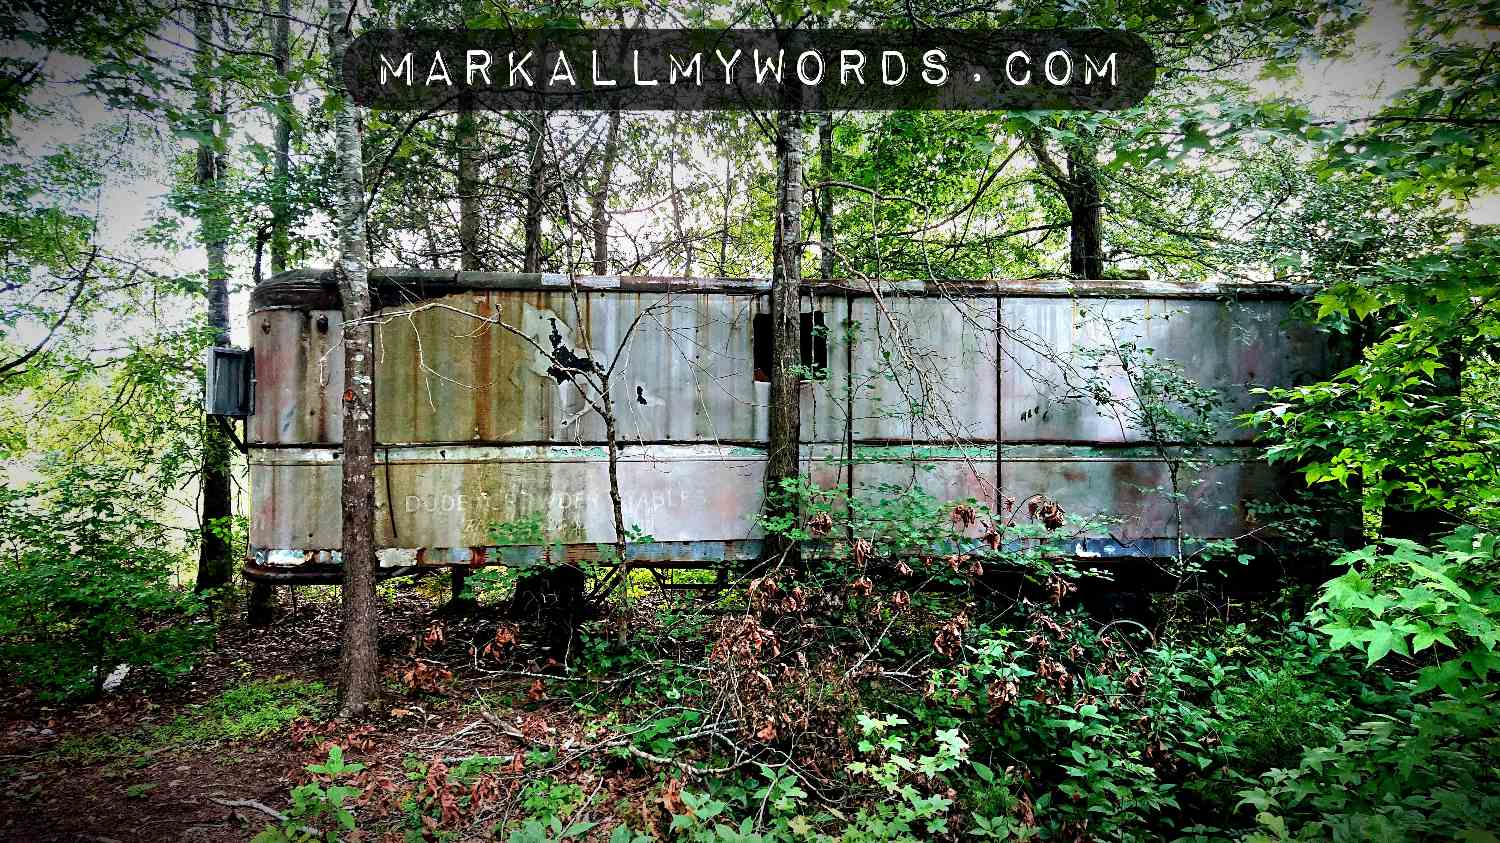 Old metallic trailer in the woods